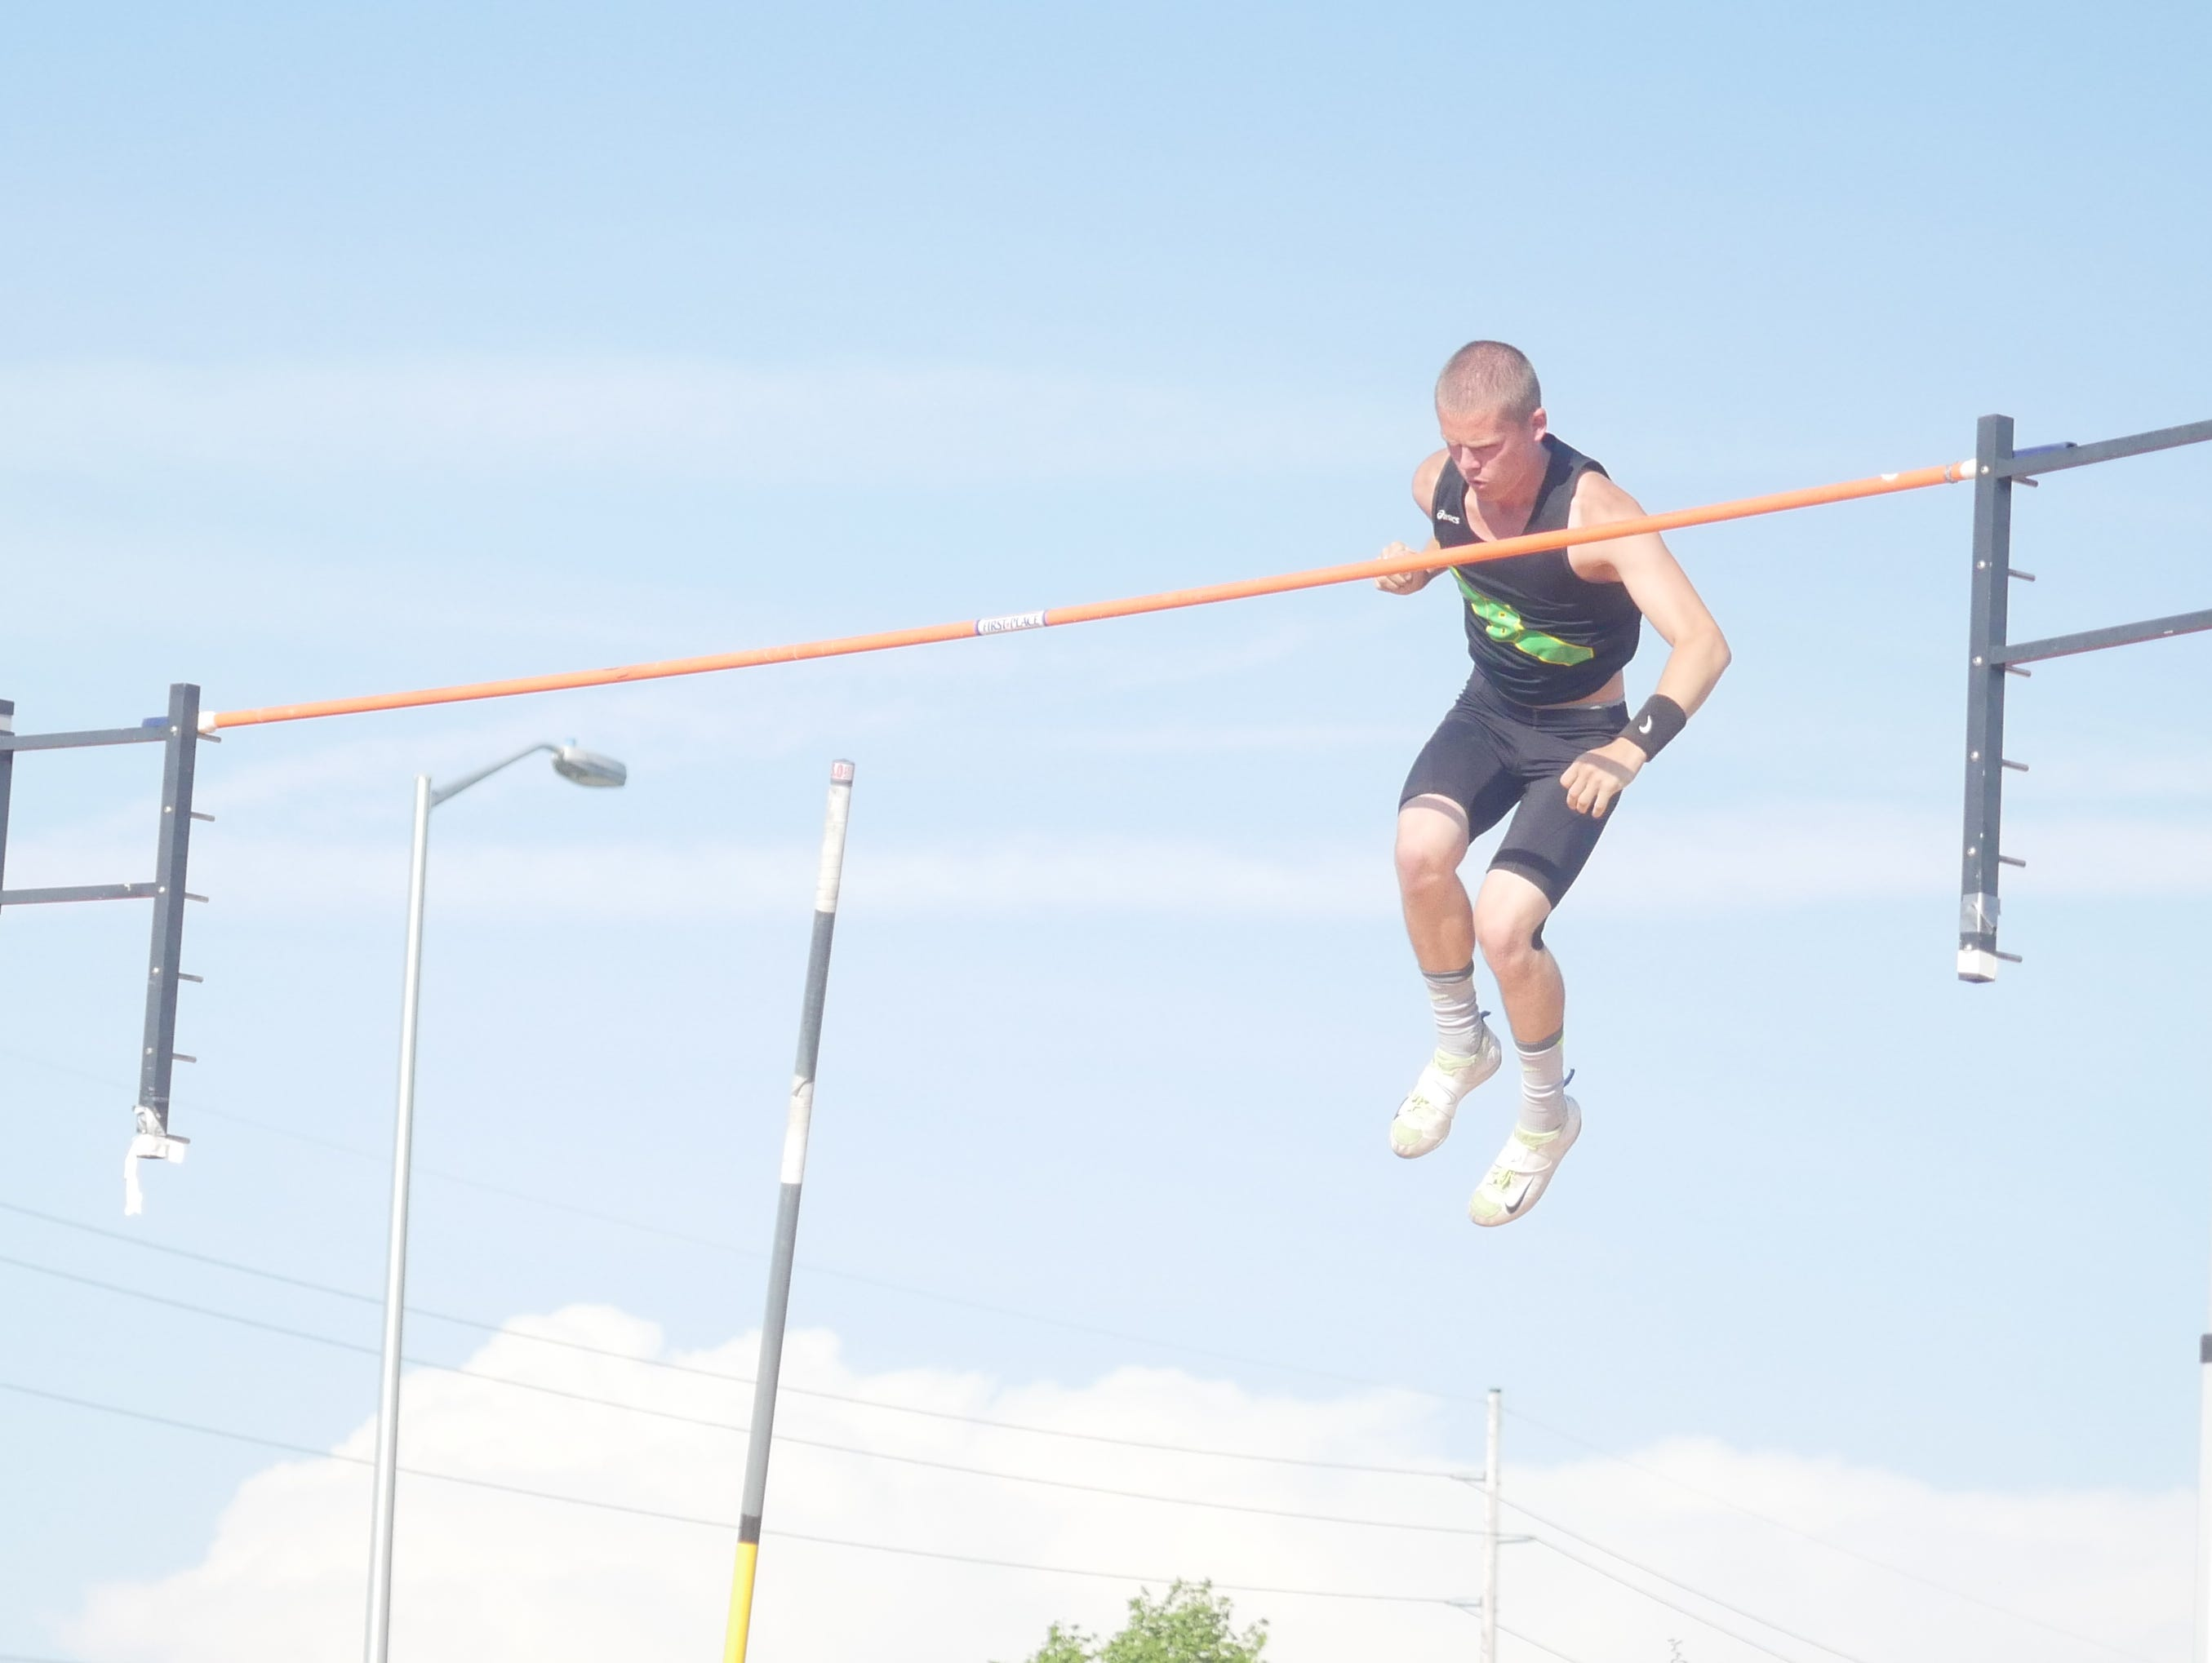 Bishop Blanchet's Zach Shugart won the 3A Boys Pole Vault with 15-09 after placing second last year.